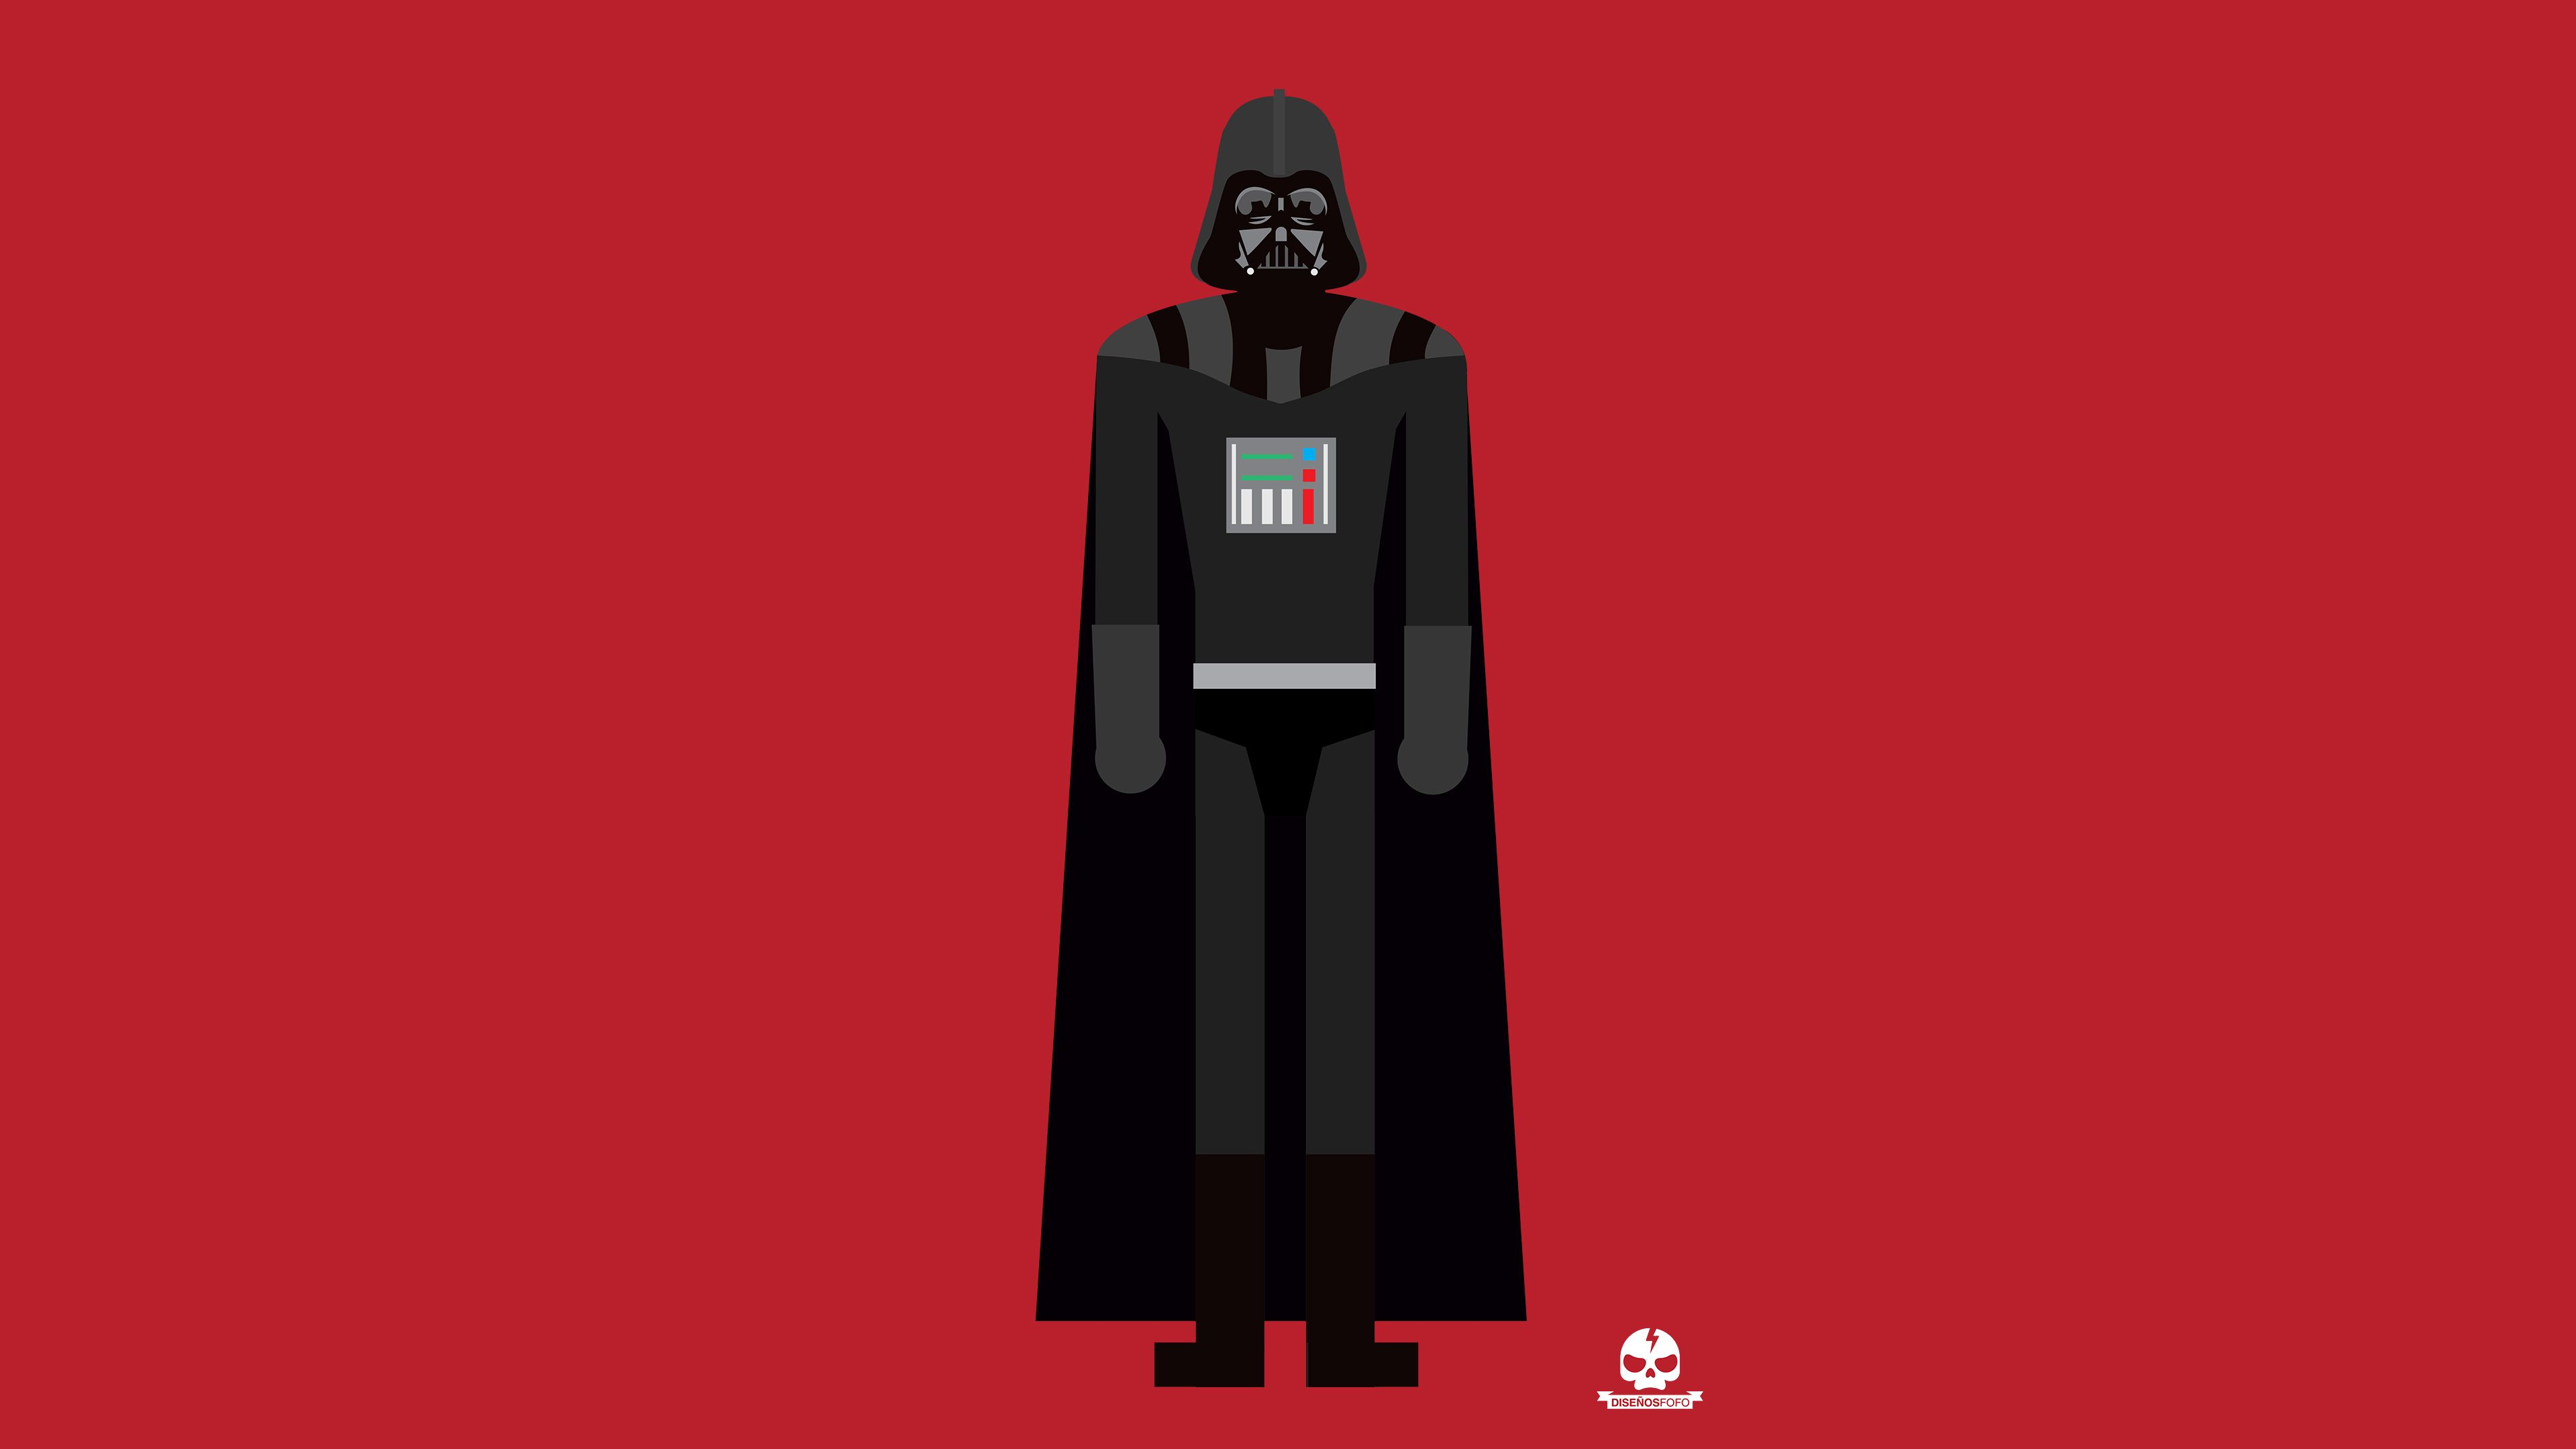 Darth Vader Minimalism 4k Supervillain Wallpapers Star Wars Wallpapers Hd Wallpapers Darth Vader Wallp Darth Vader Wallpaper Star Wars Wallpaper Darth Vader